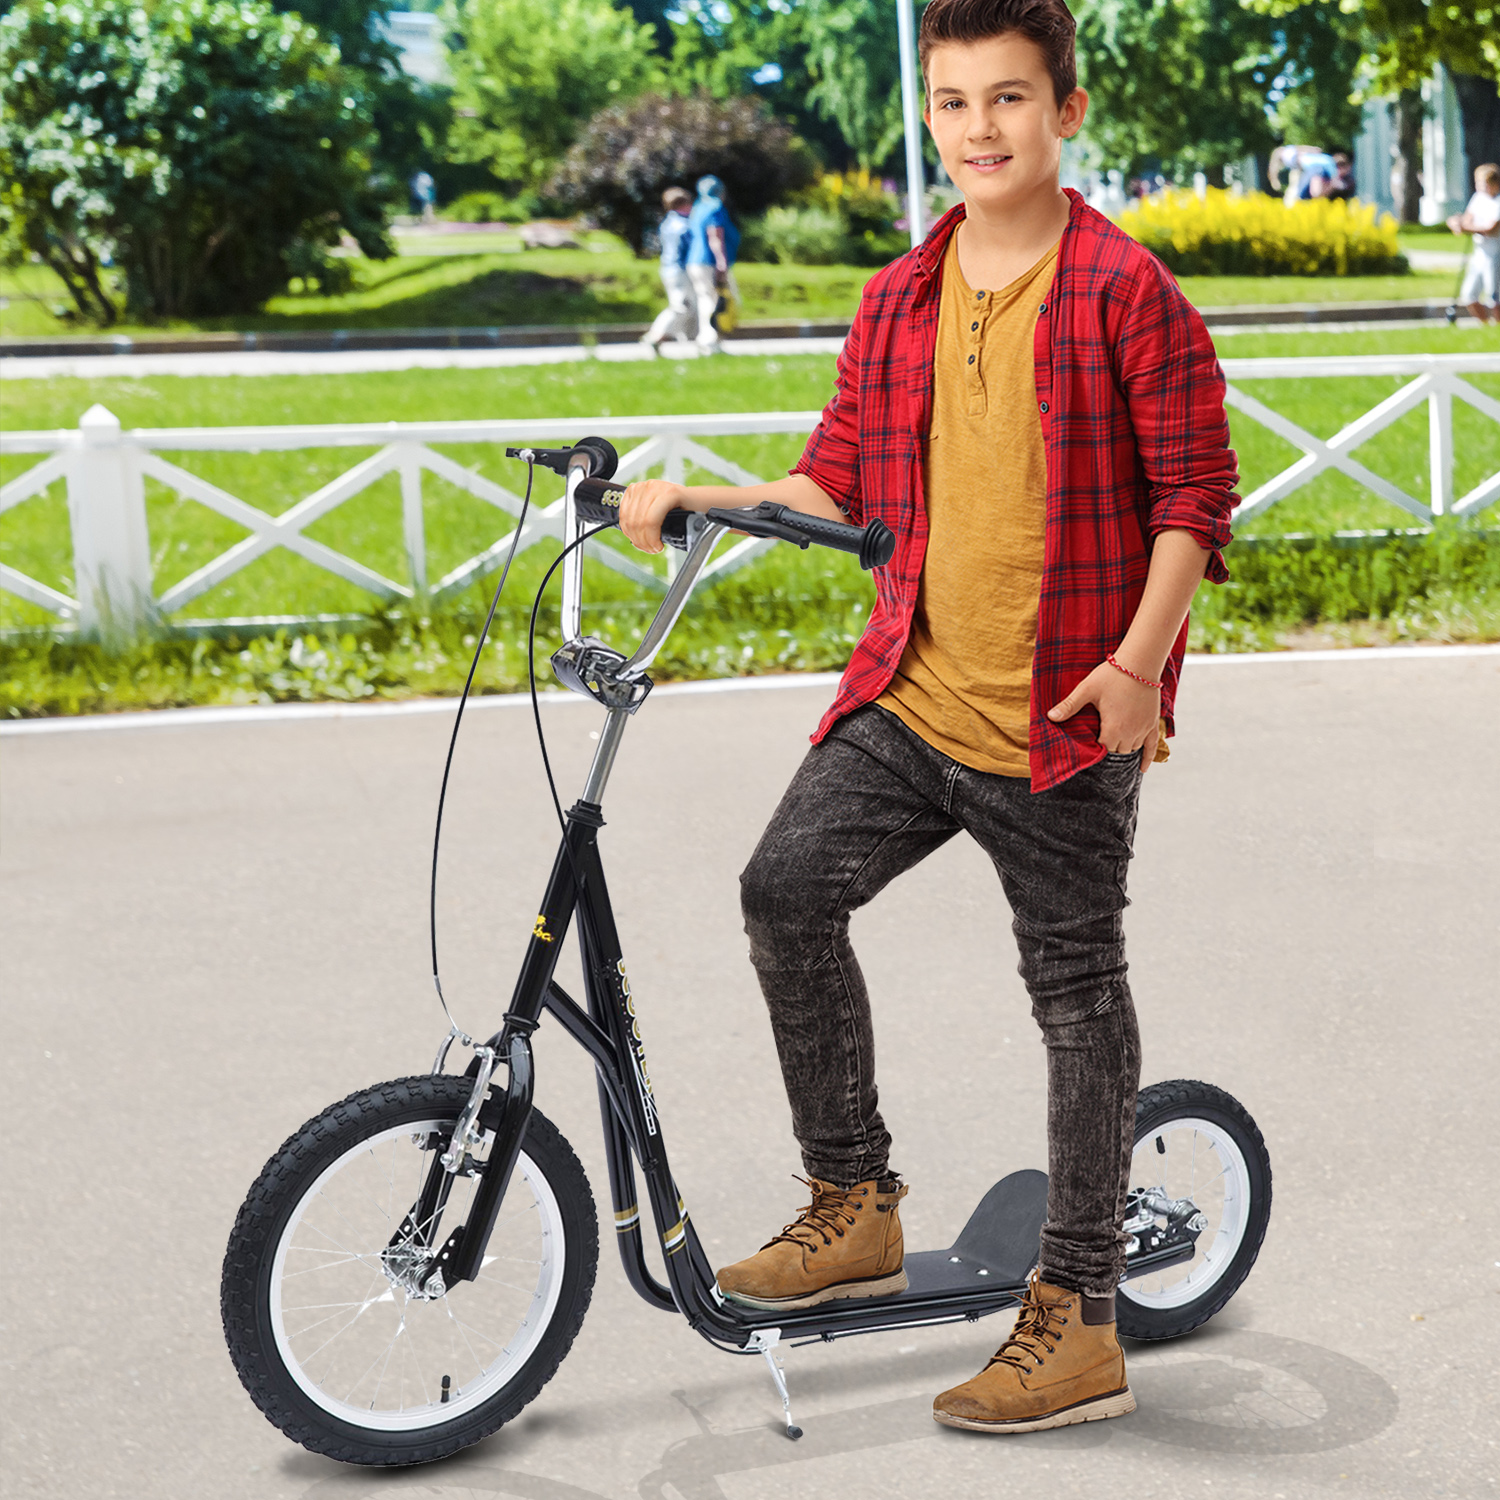 Adult-Teen-Push-Stunt-Kick-Scooter-Kids-Children-Bike-Bicycle-Ride-Street-New thumbnail 6